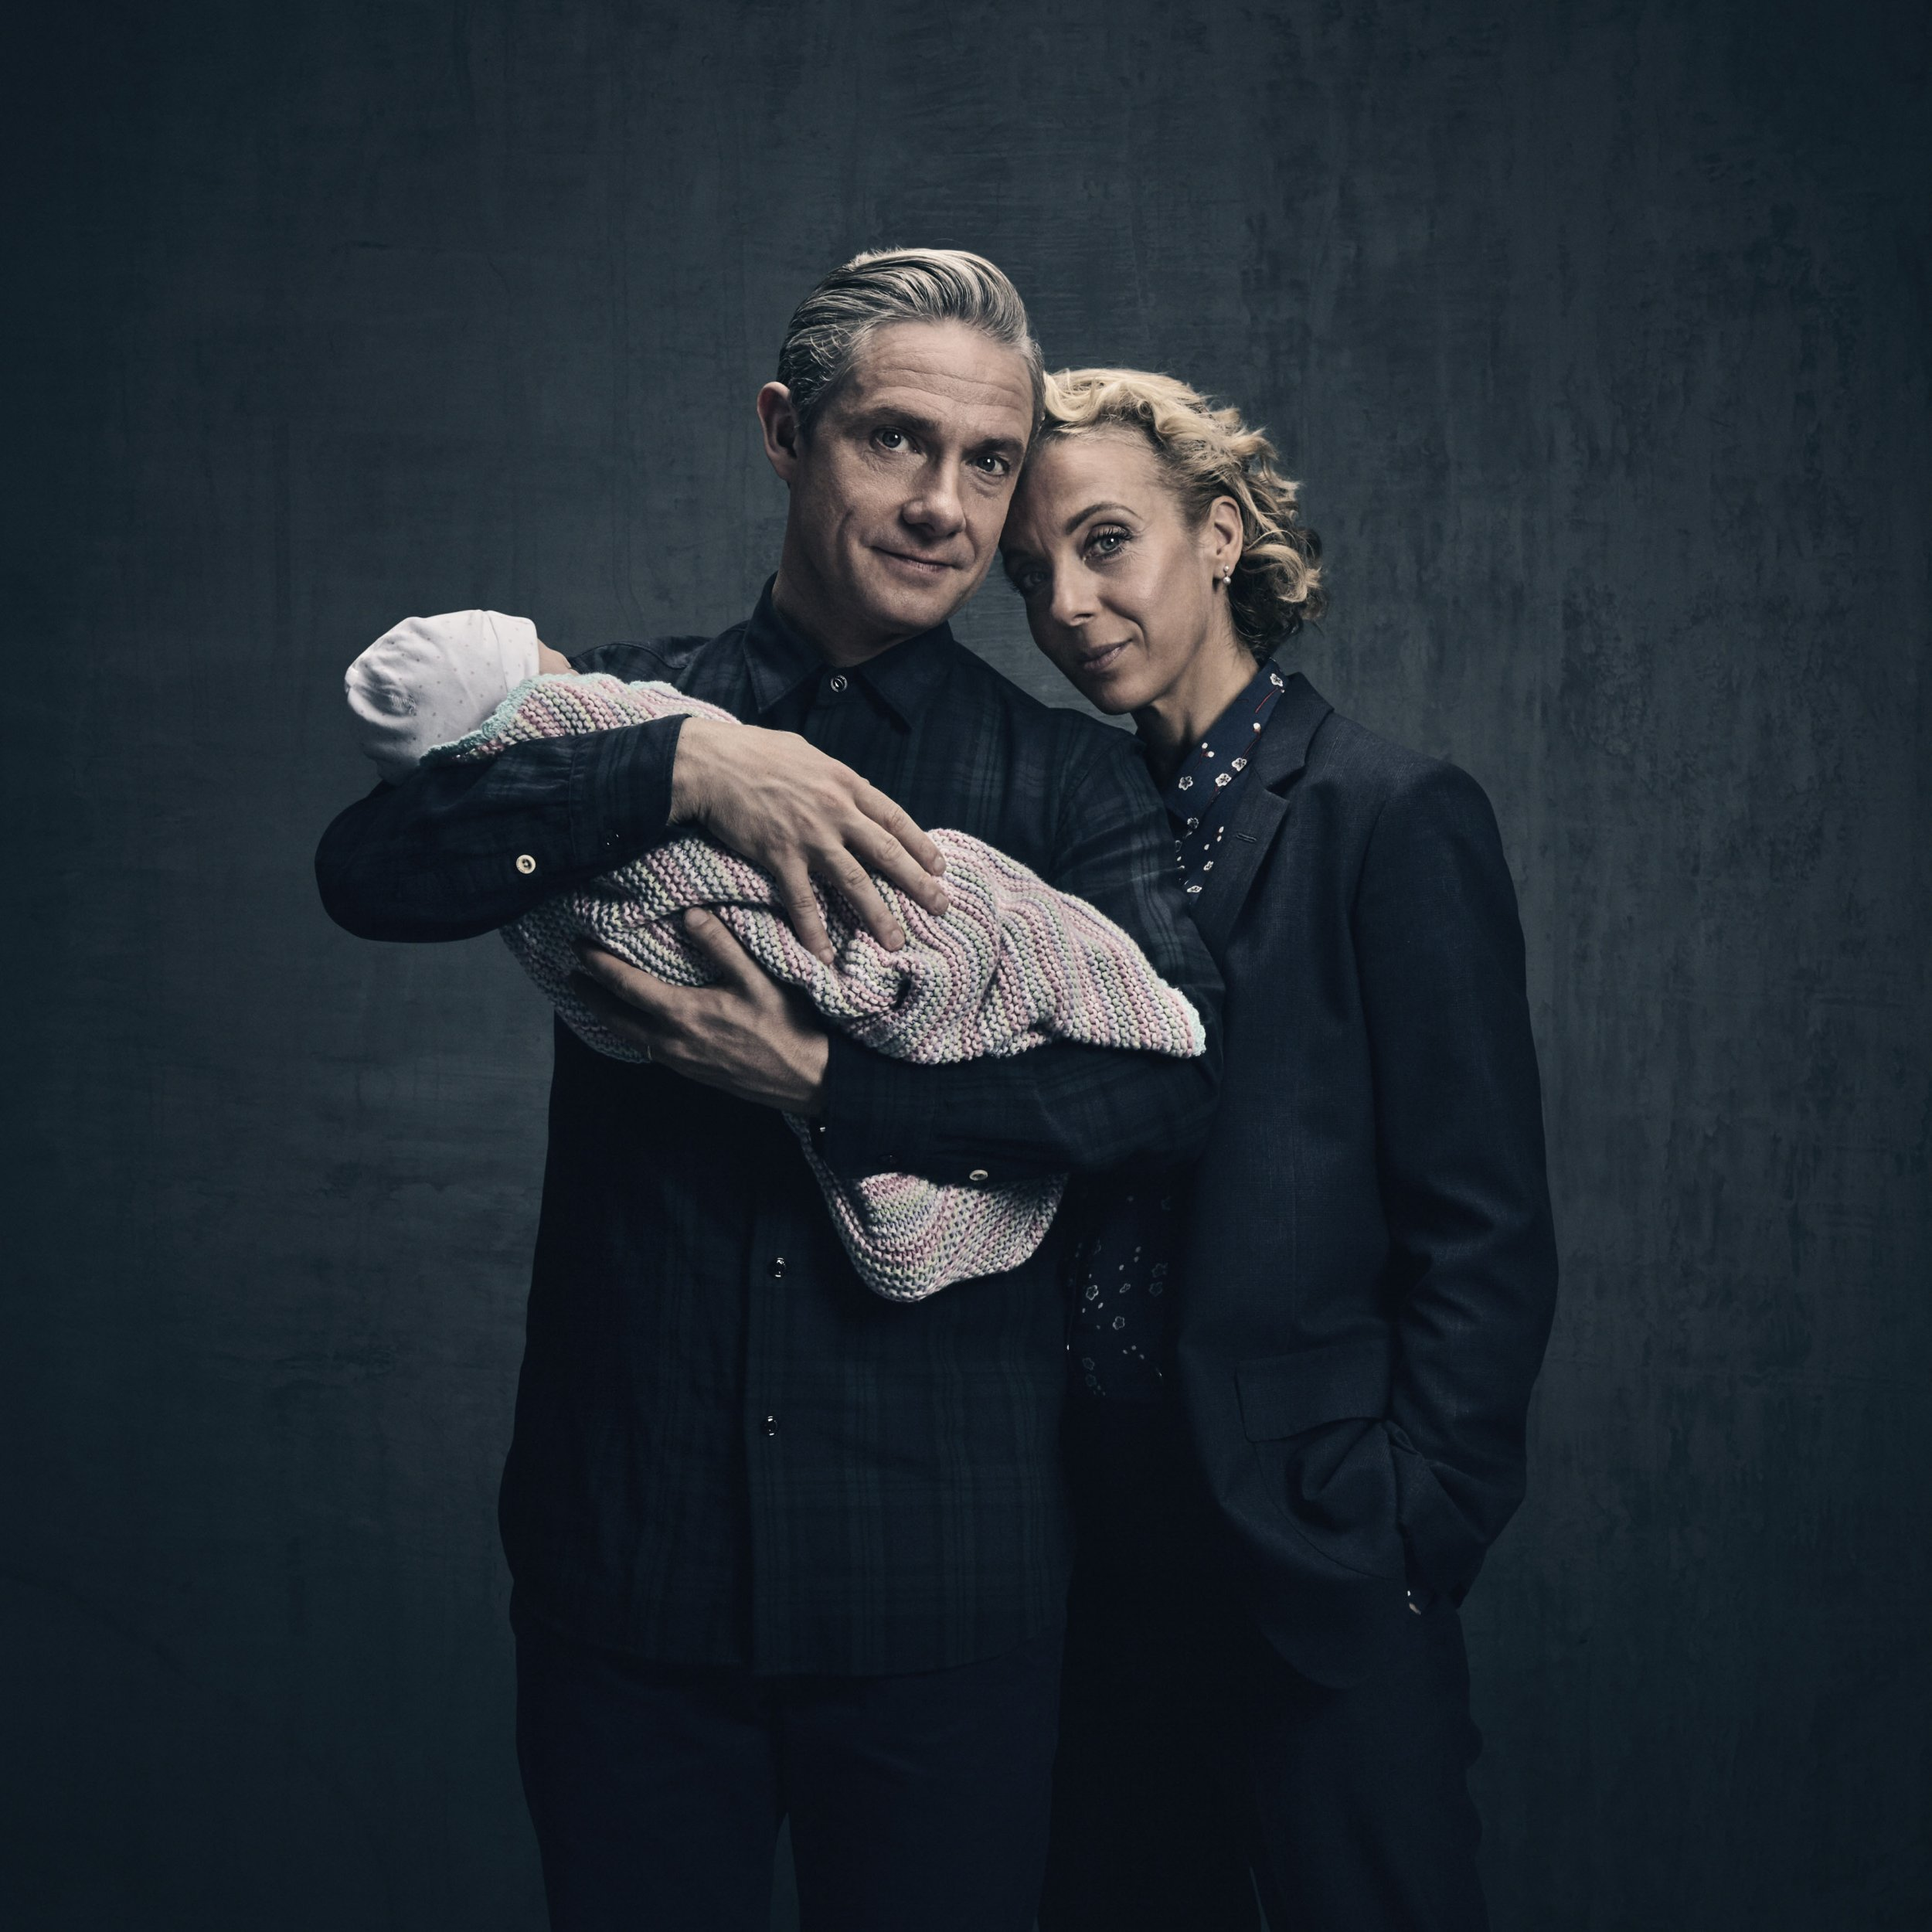 Sherlock - Martin Freeman and Amanda Abbington